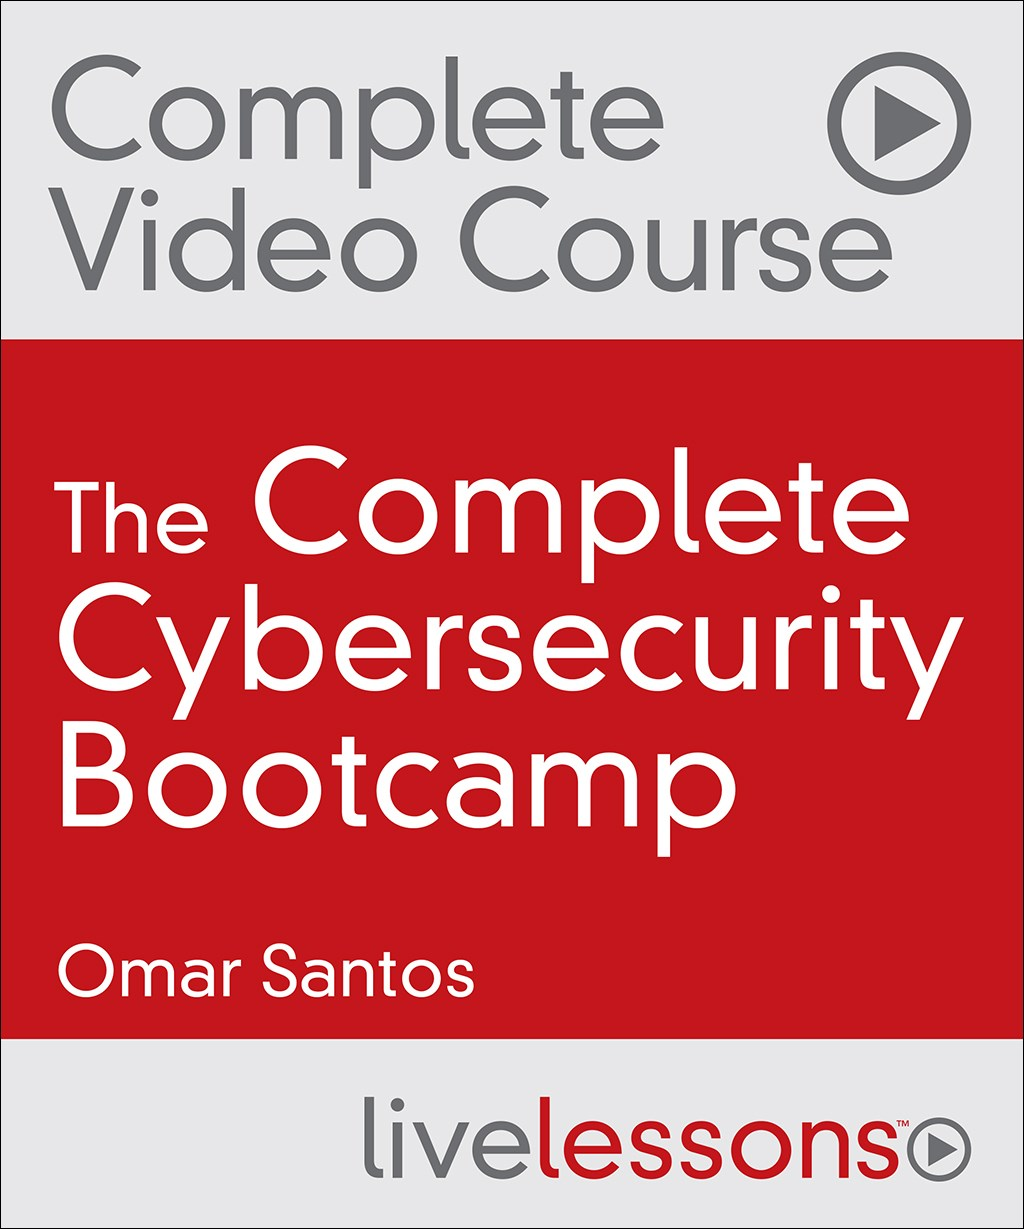 Cybersecurity Complete Video Course